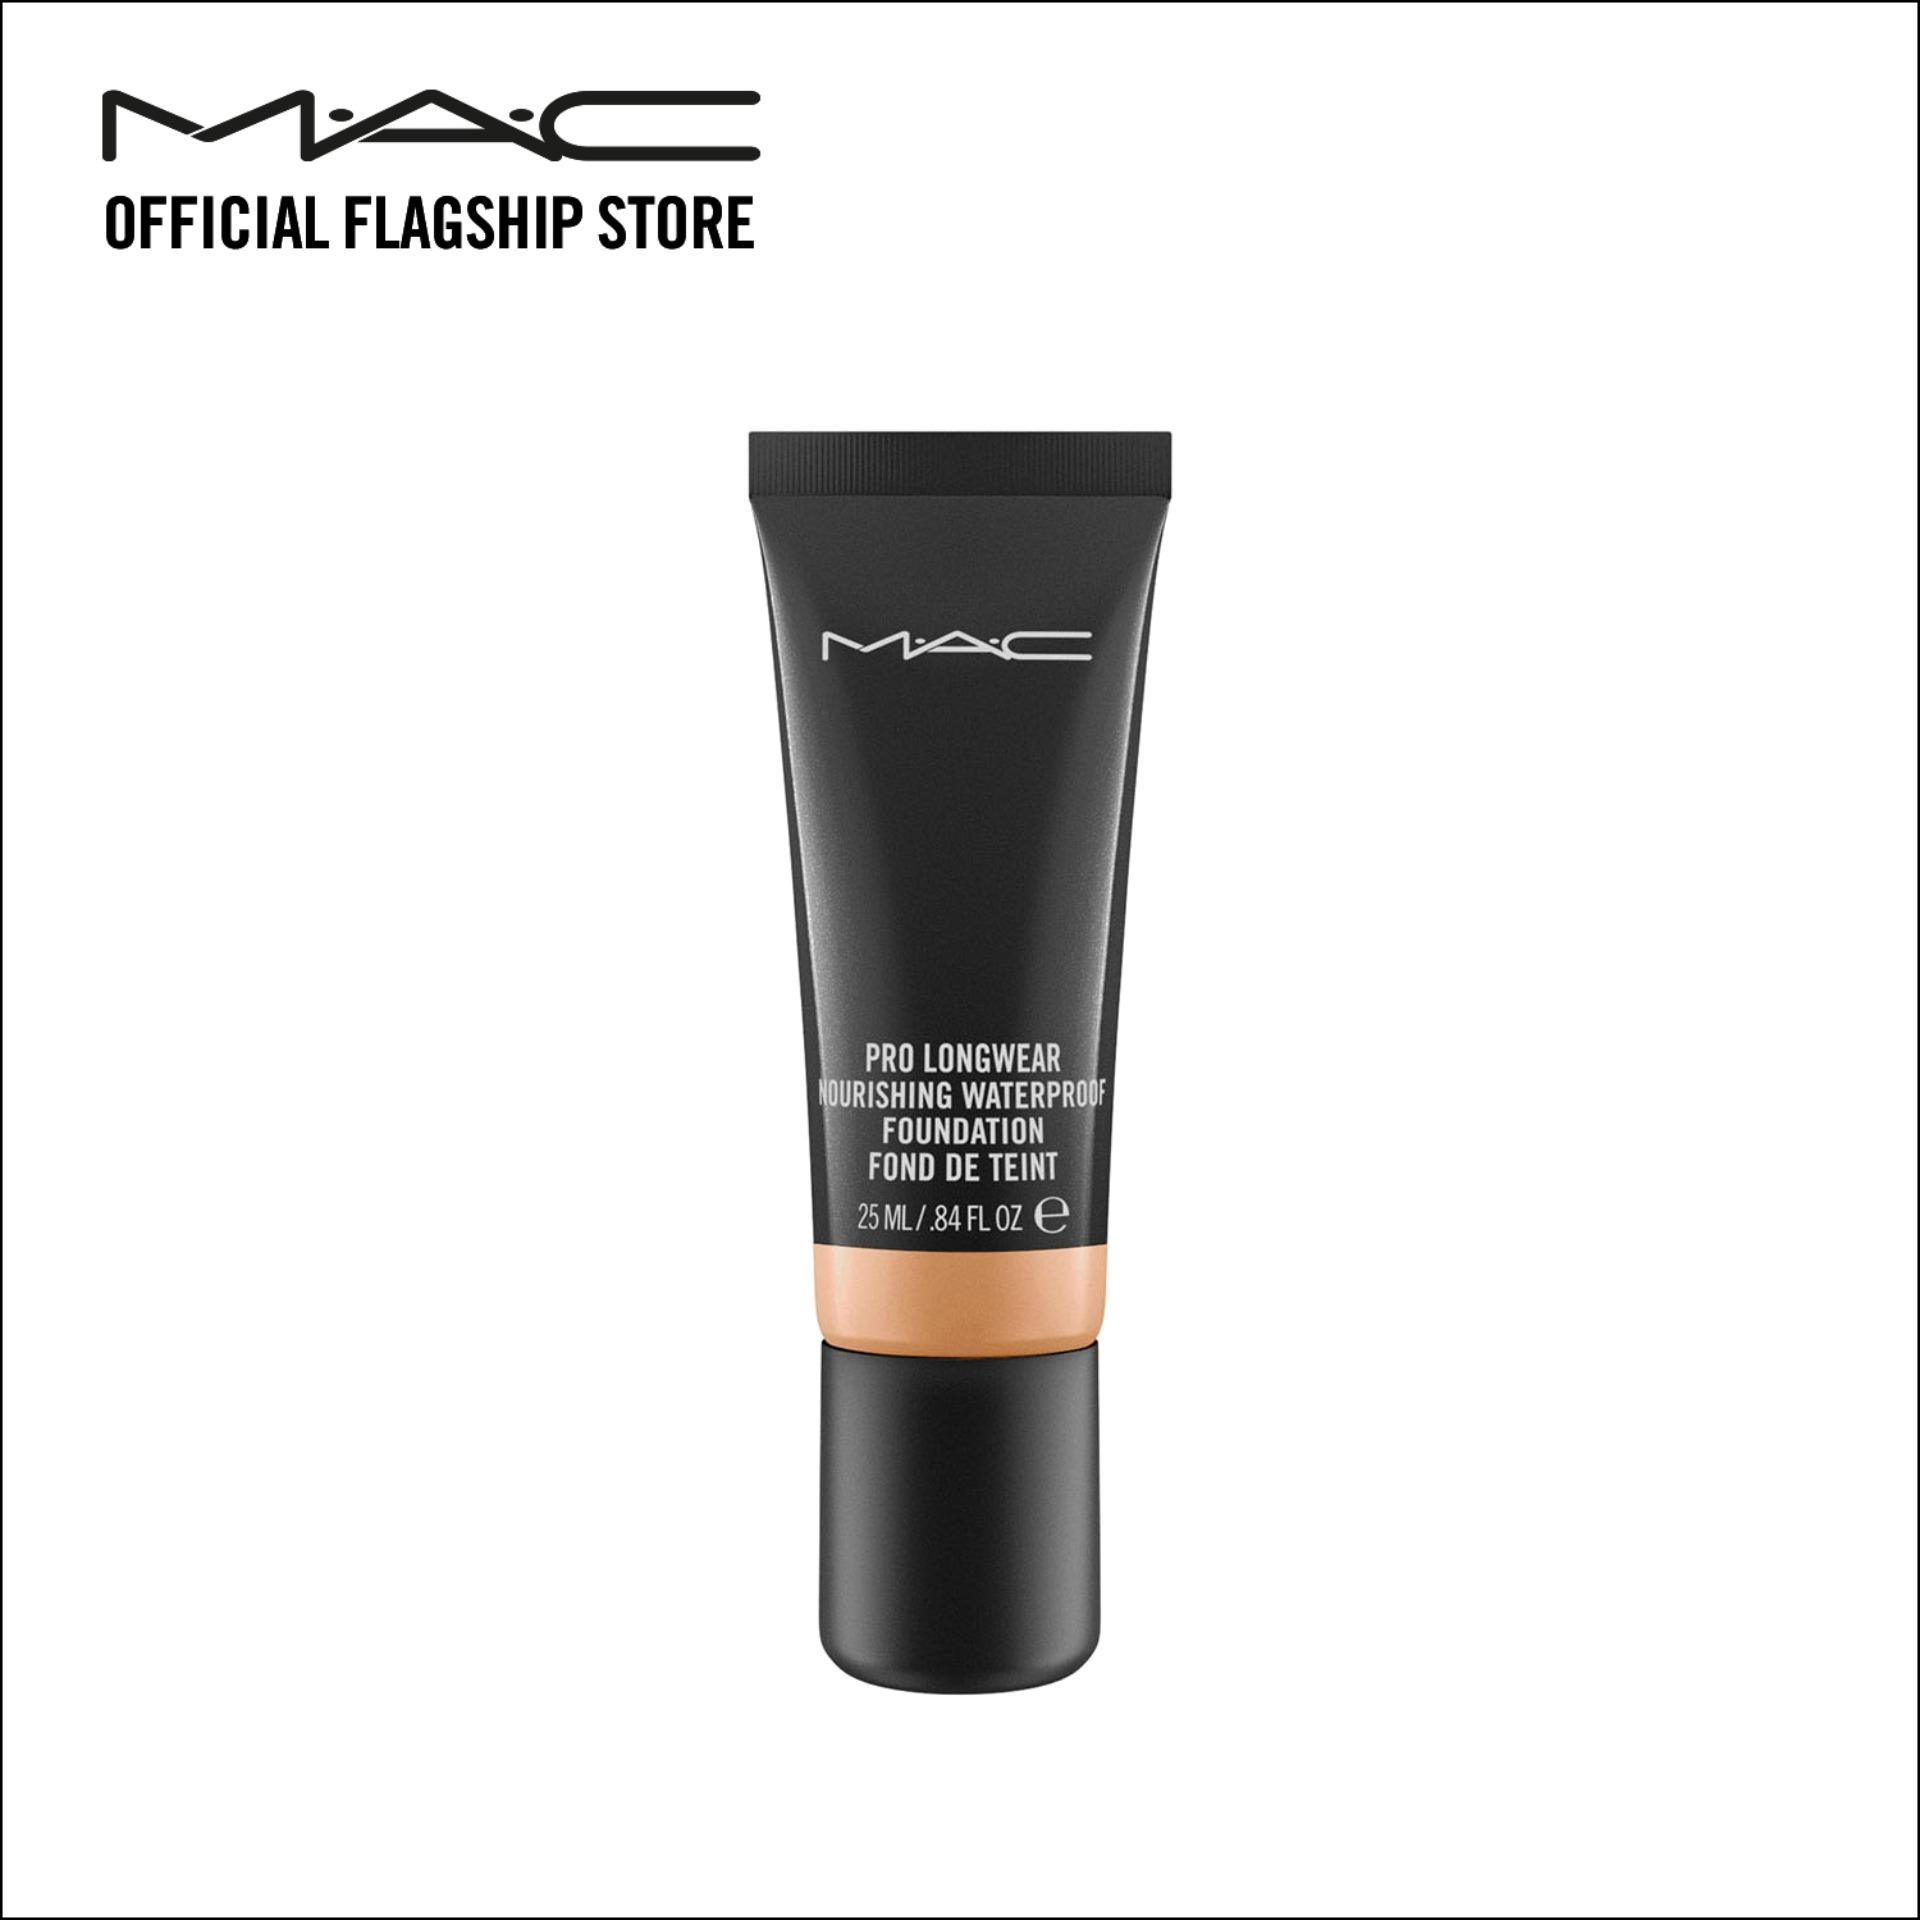 Mac Pro Longwear Nourishing Waterproof Foundation Nc35 Free Shipping